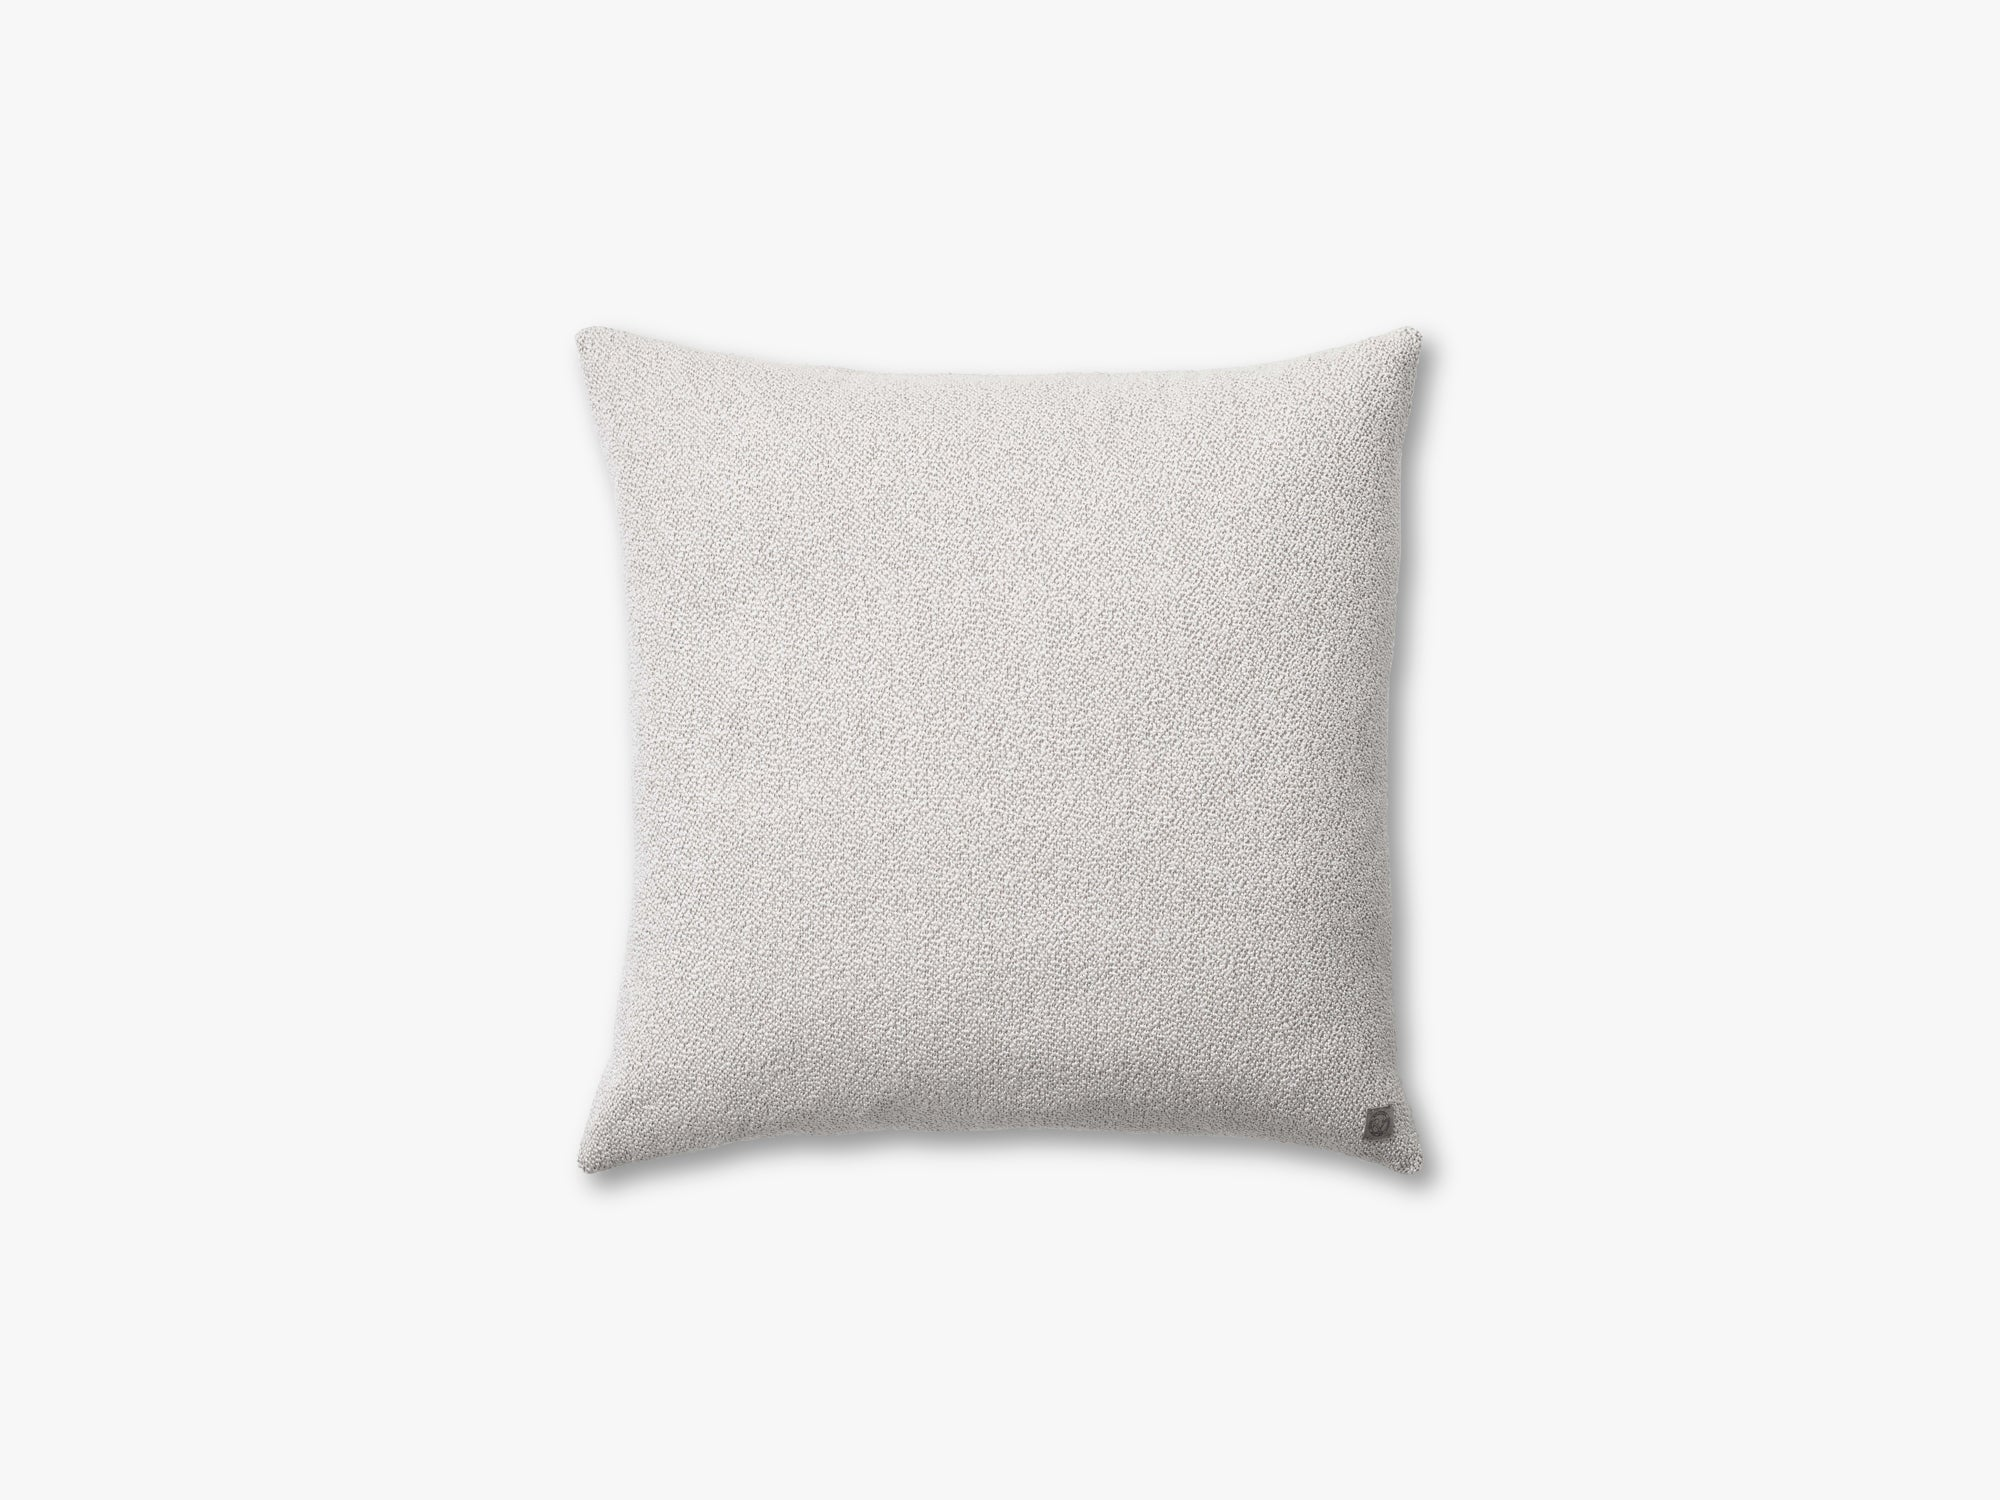 Collect Cushion SC29 - 65x65, Ivory&Sand Boucle fra &tradition